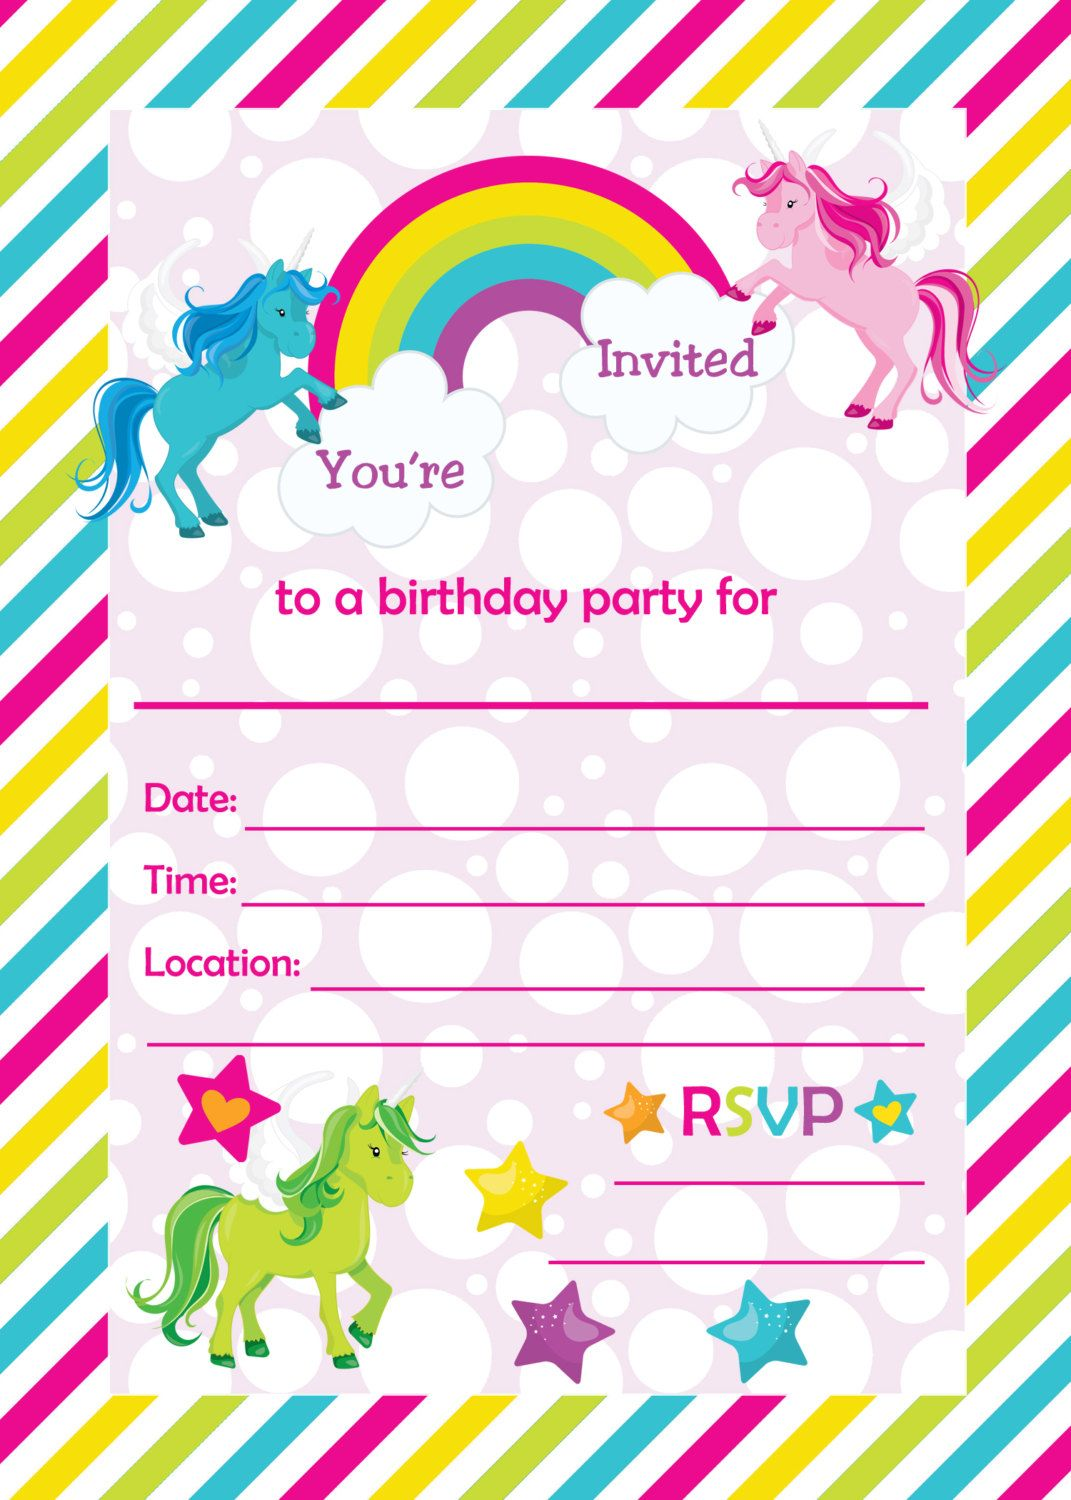 Fill in birthday party invitations printable rainbows and unicorns fill in birthday party invitations printable rainbows and unicorns invitations blank party invitation download 650 handmade holidays stopboris Choice Image